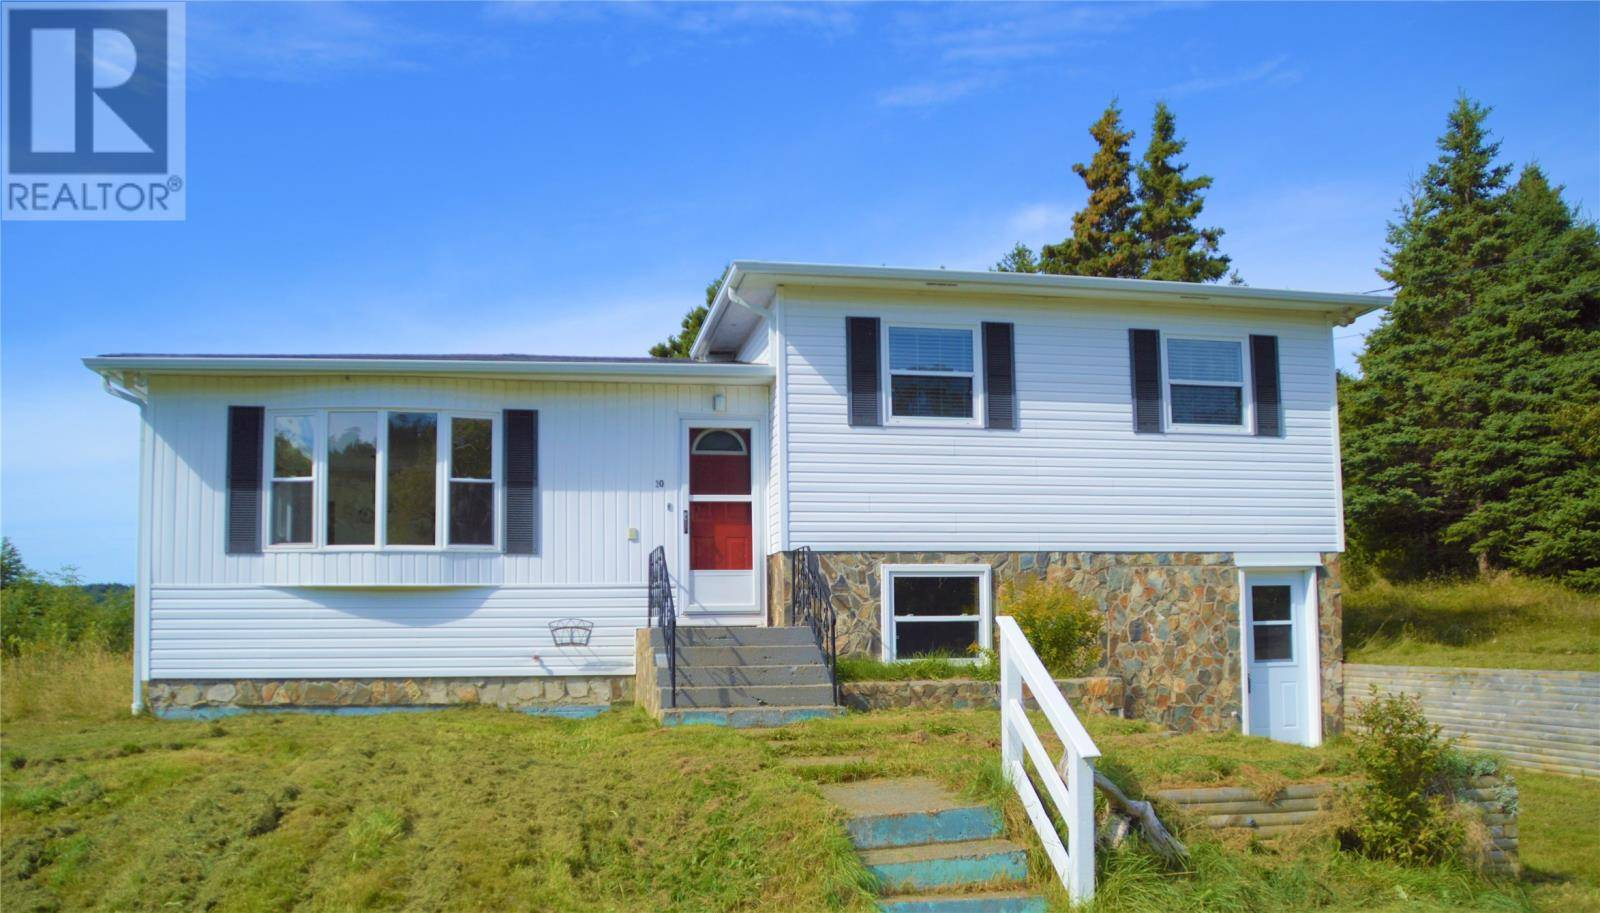 House for sale at 10 Devereauxs Rd Avondale Newfoundland - MLS: 1203366